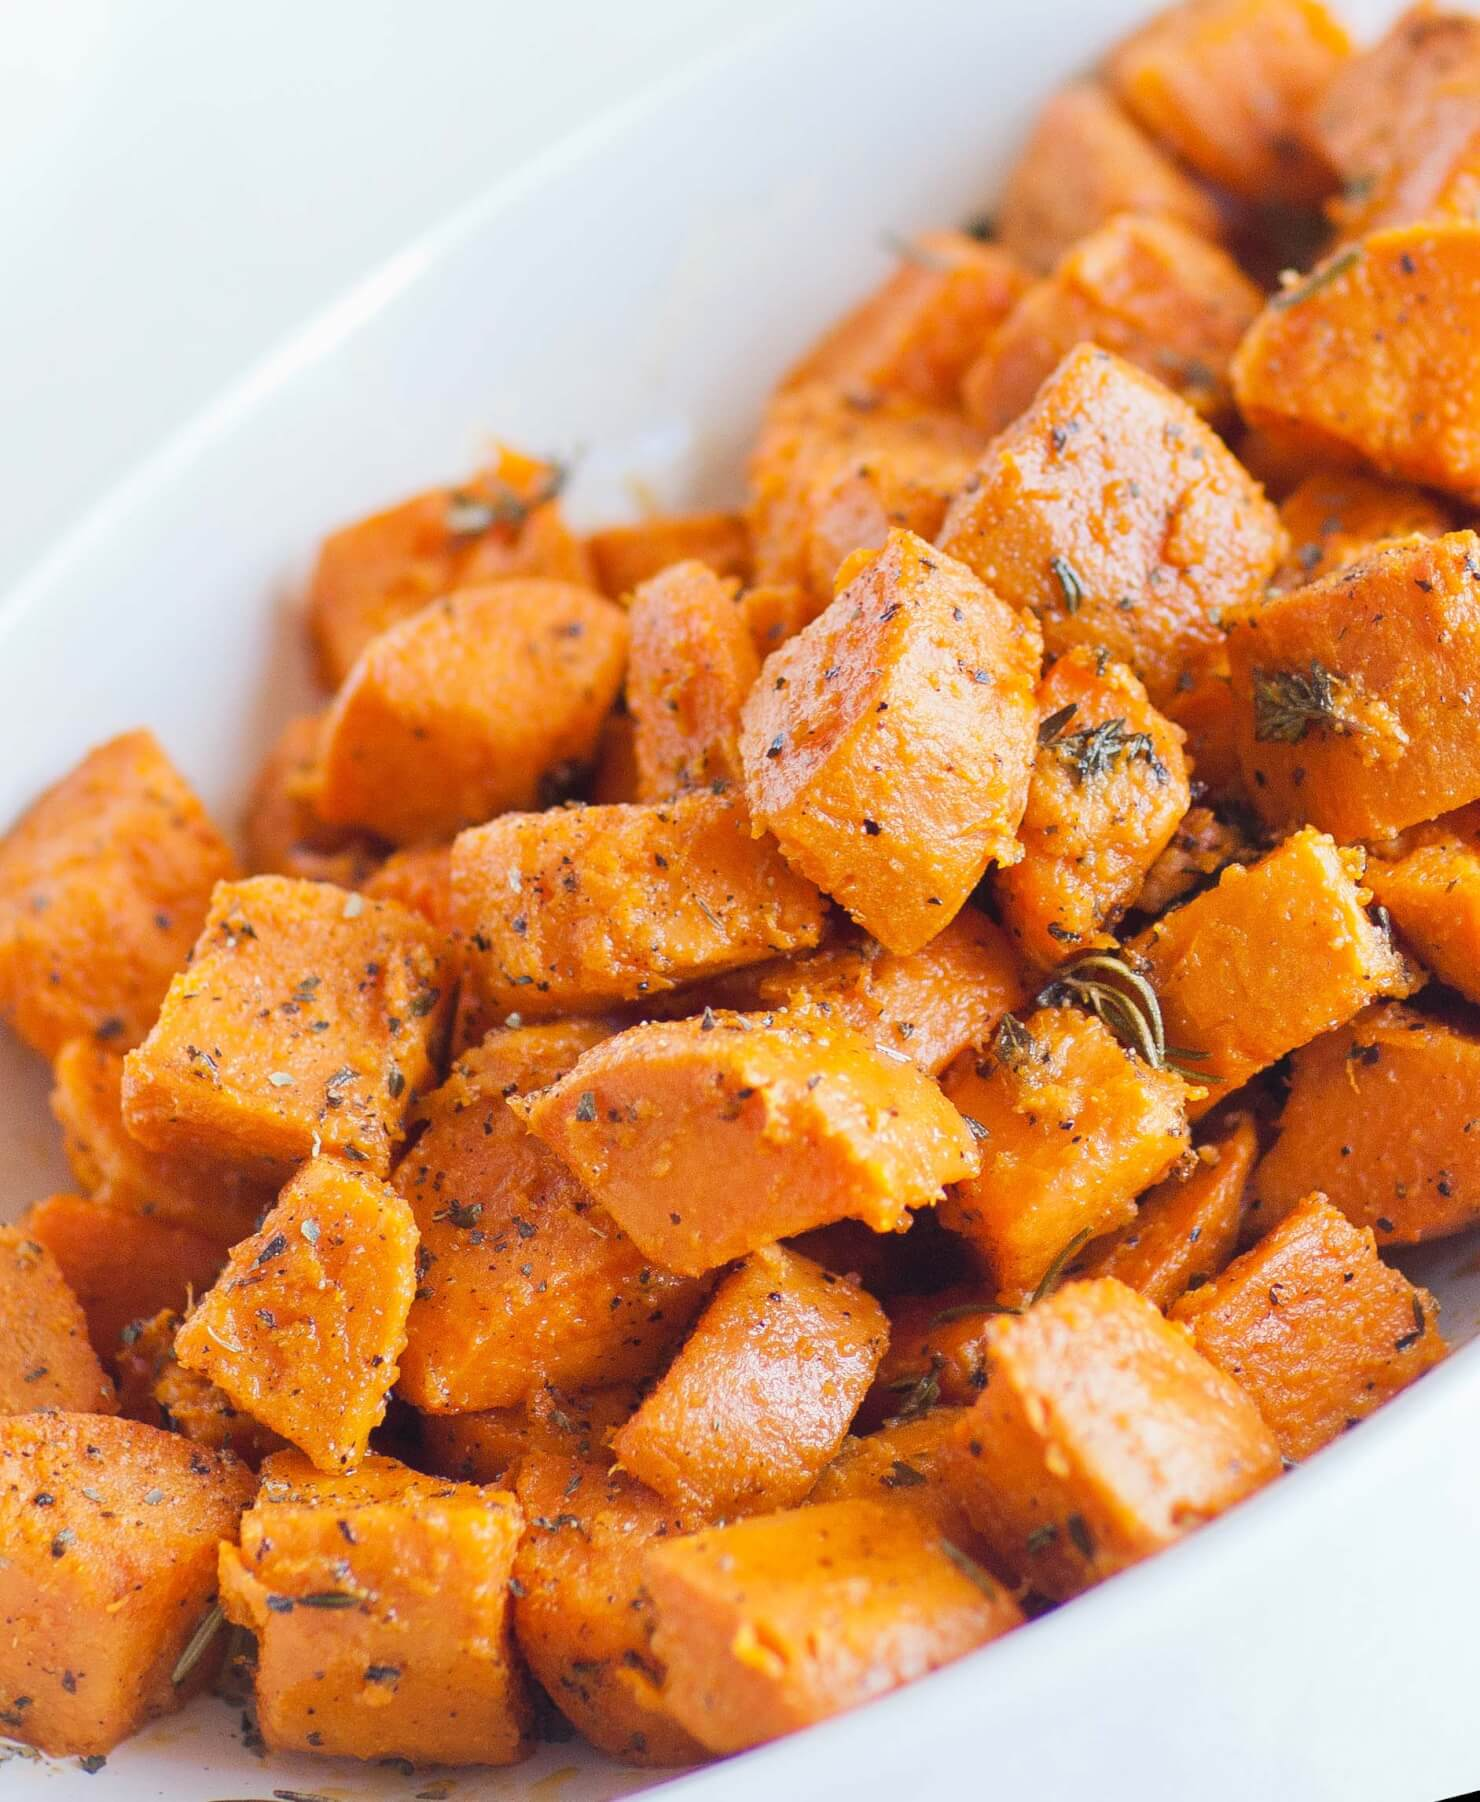 oven roasted sweet potatoes with herbs